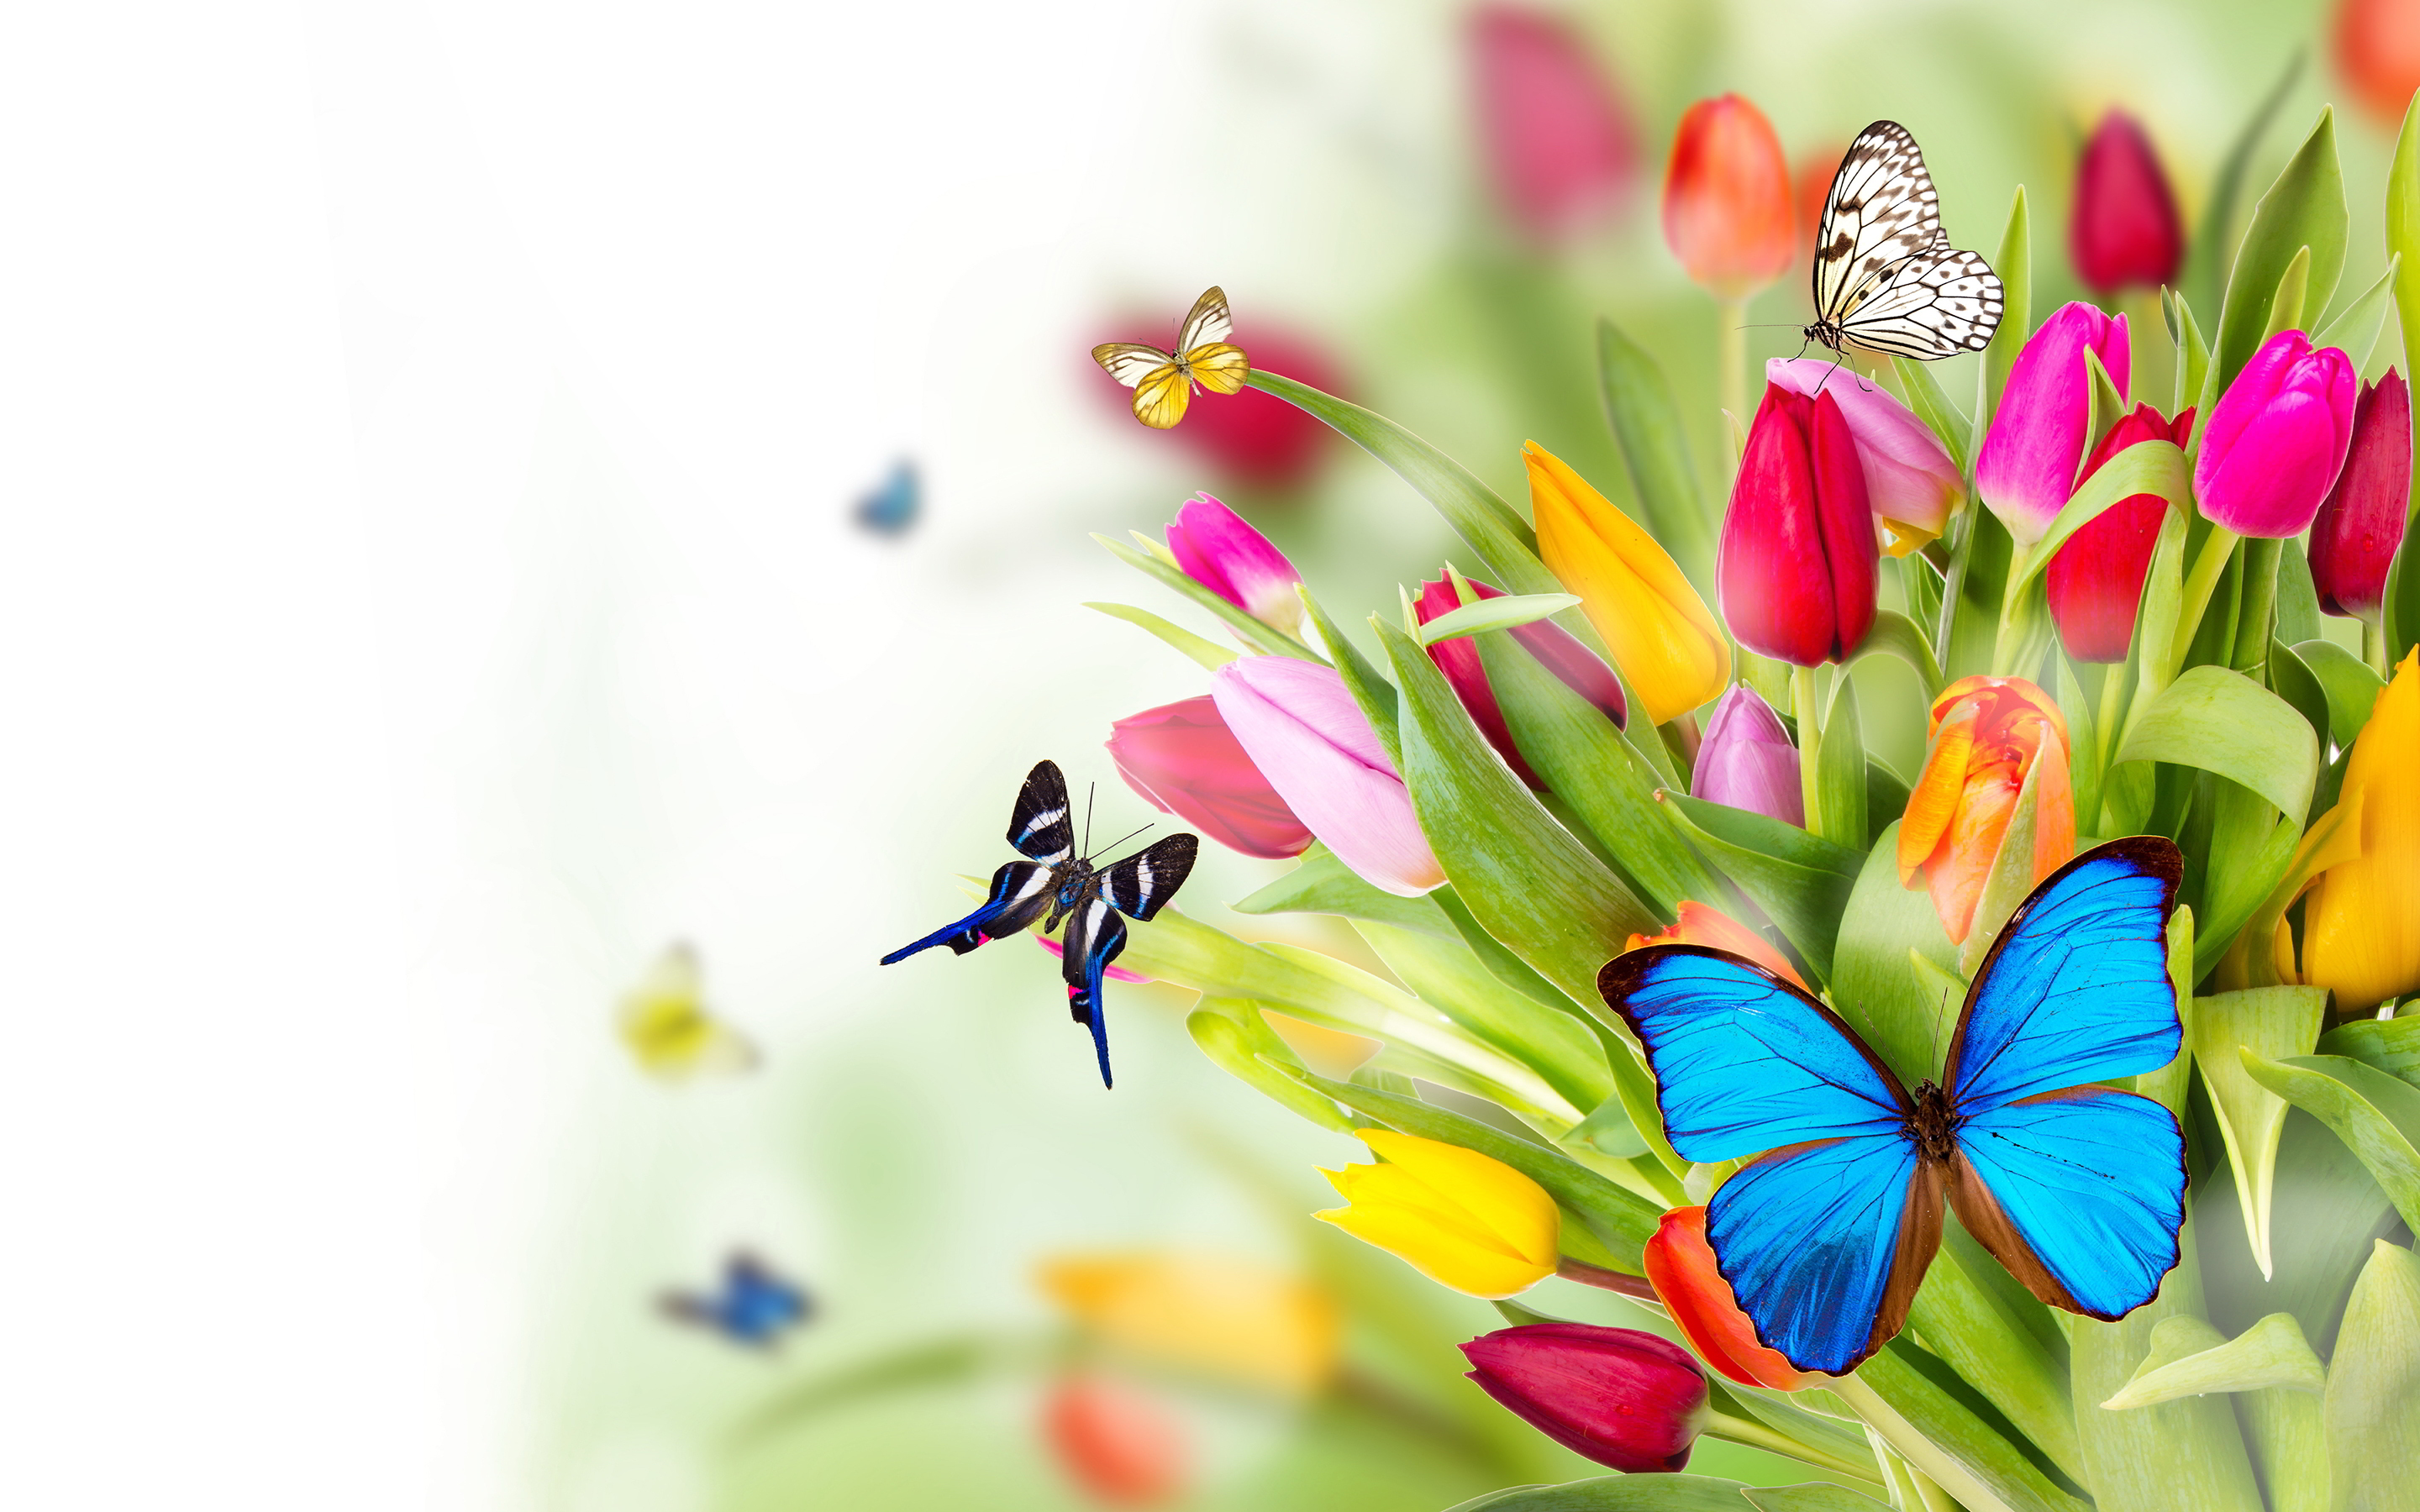 Flowers and butterflies wallpaper   SF Wallpaper 2880x1800